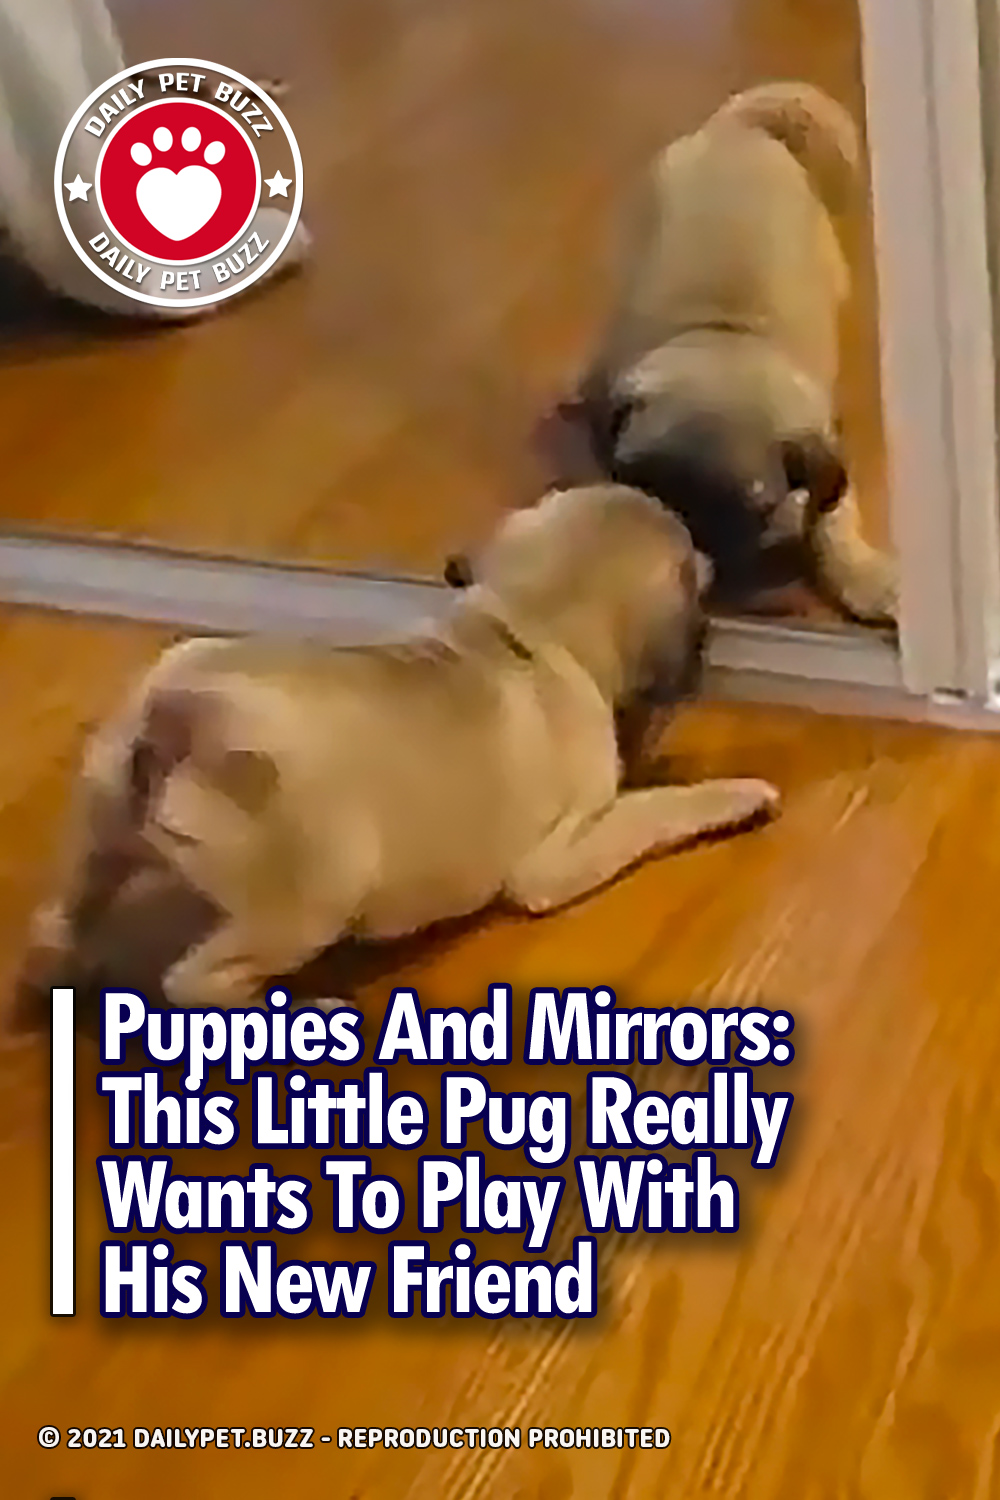 Puppies And Mirrors: This Little Pug Really Wants To Play With His New Friend